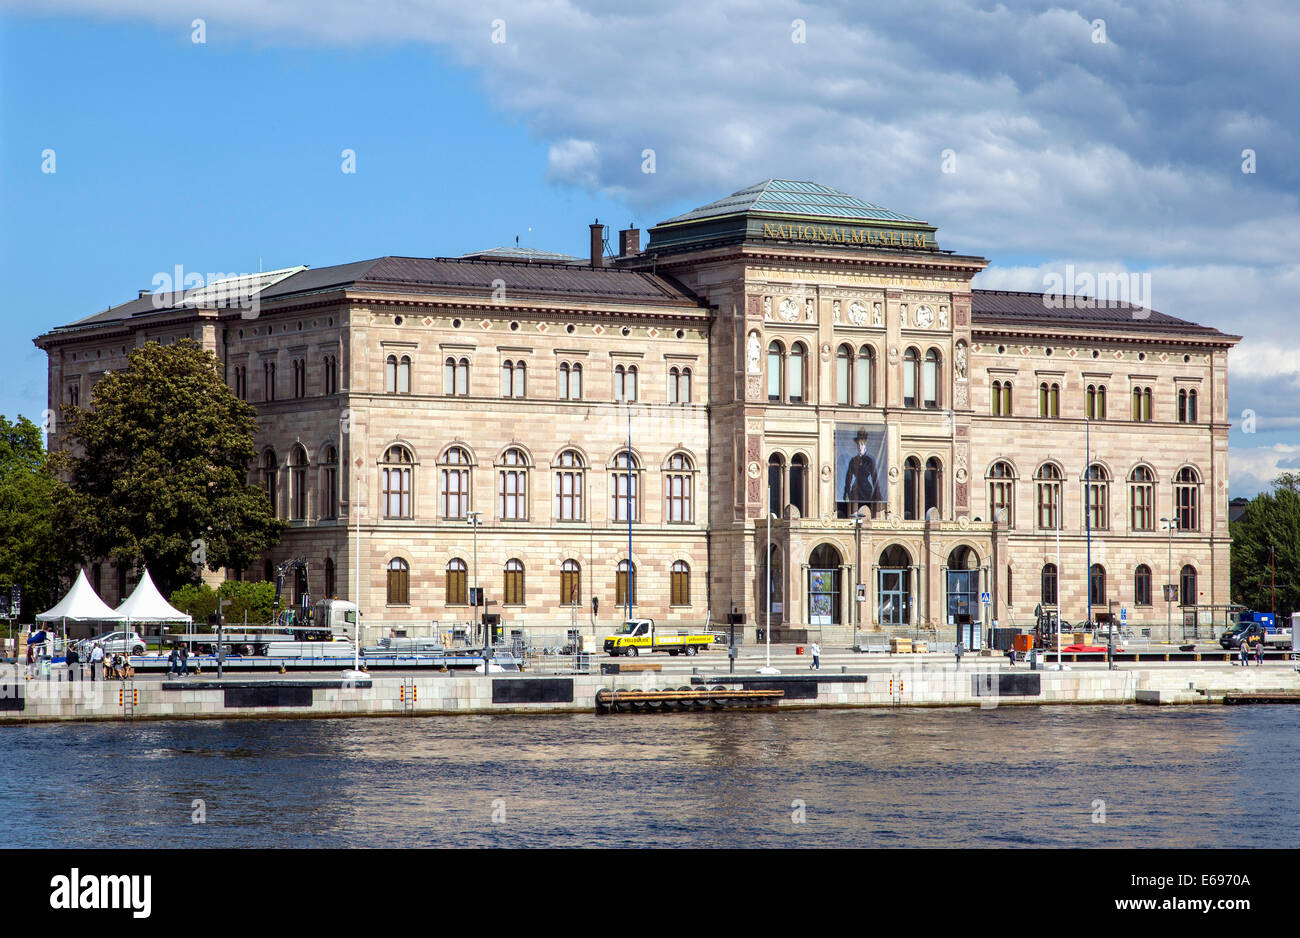 Nationalmuseum or National Museum of Fine Arts, art collection, art gallery, by architect Friedrich August Stüler, - Stock Image